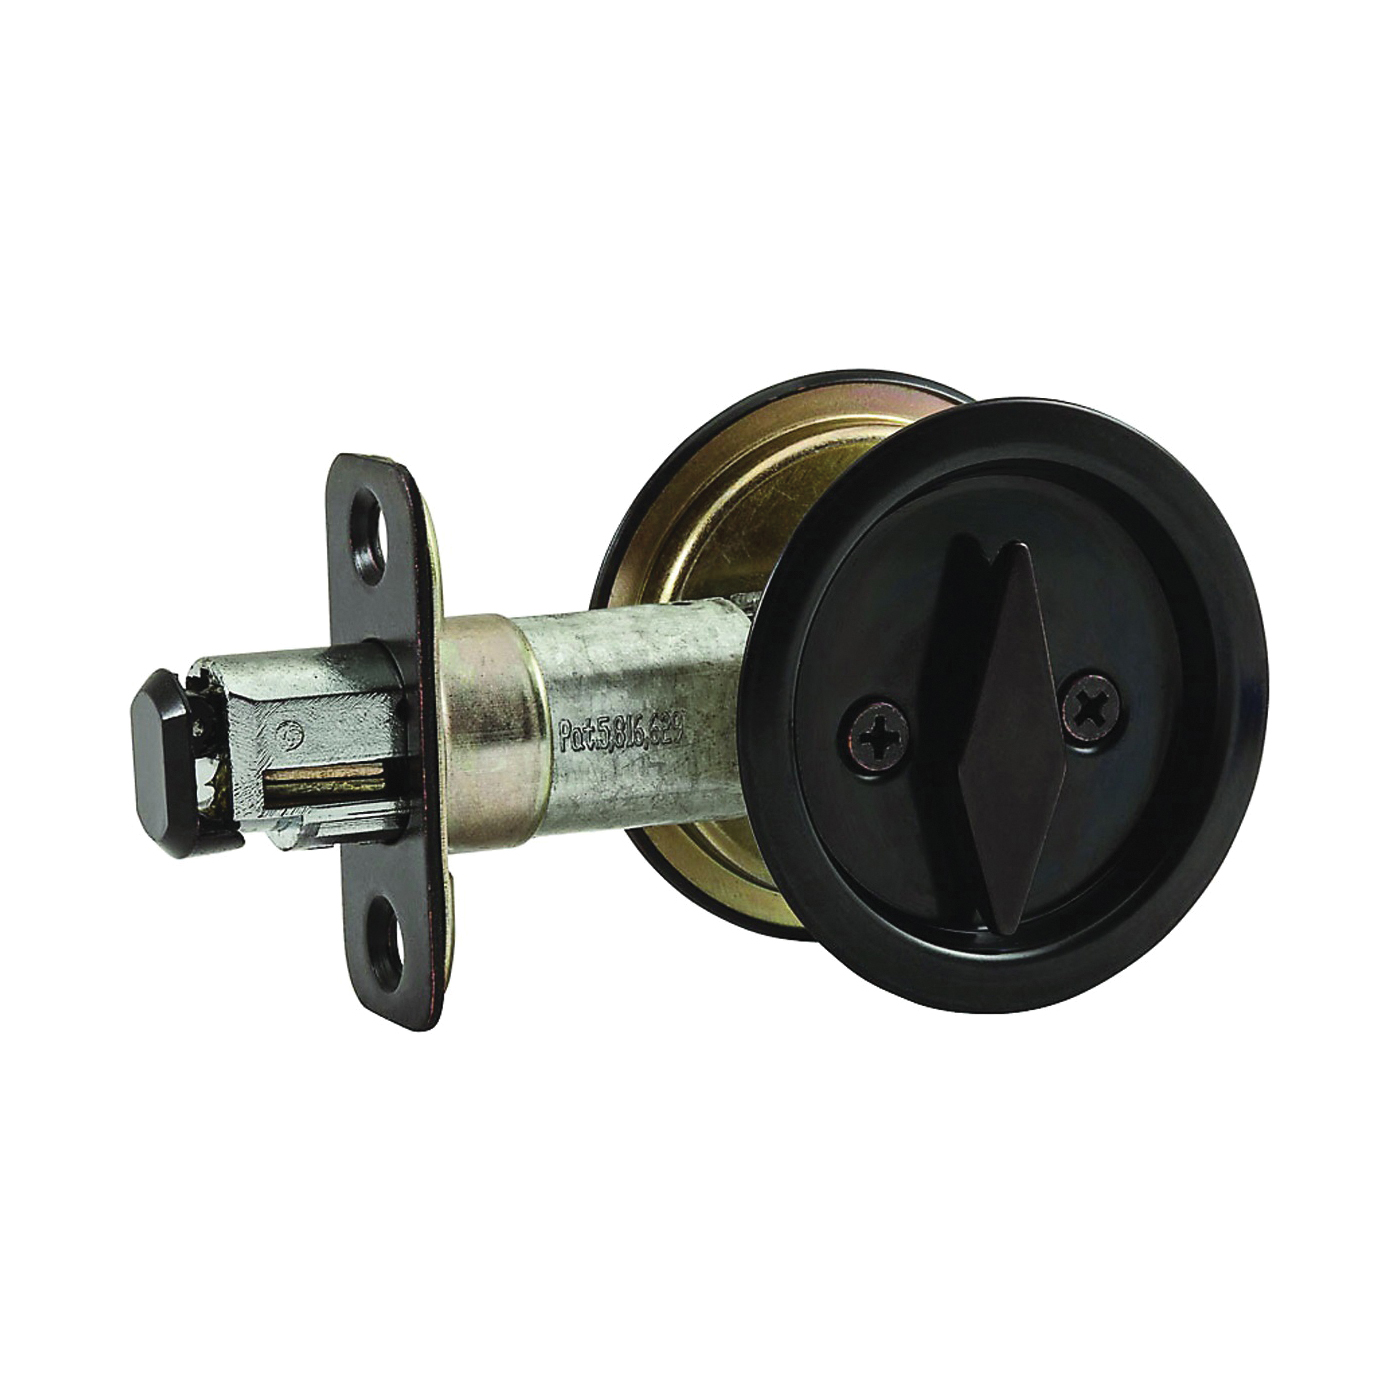 Picture of National Hardware V1954 Series N350-355 Door Latch, Pocket Latch, Steel, Oil-Rubbed Bronze